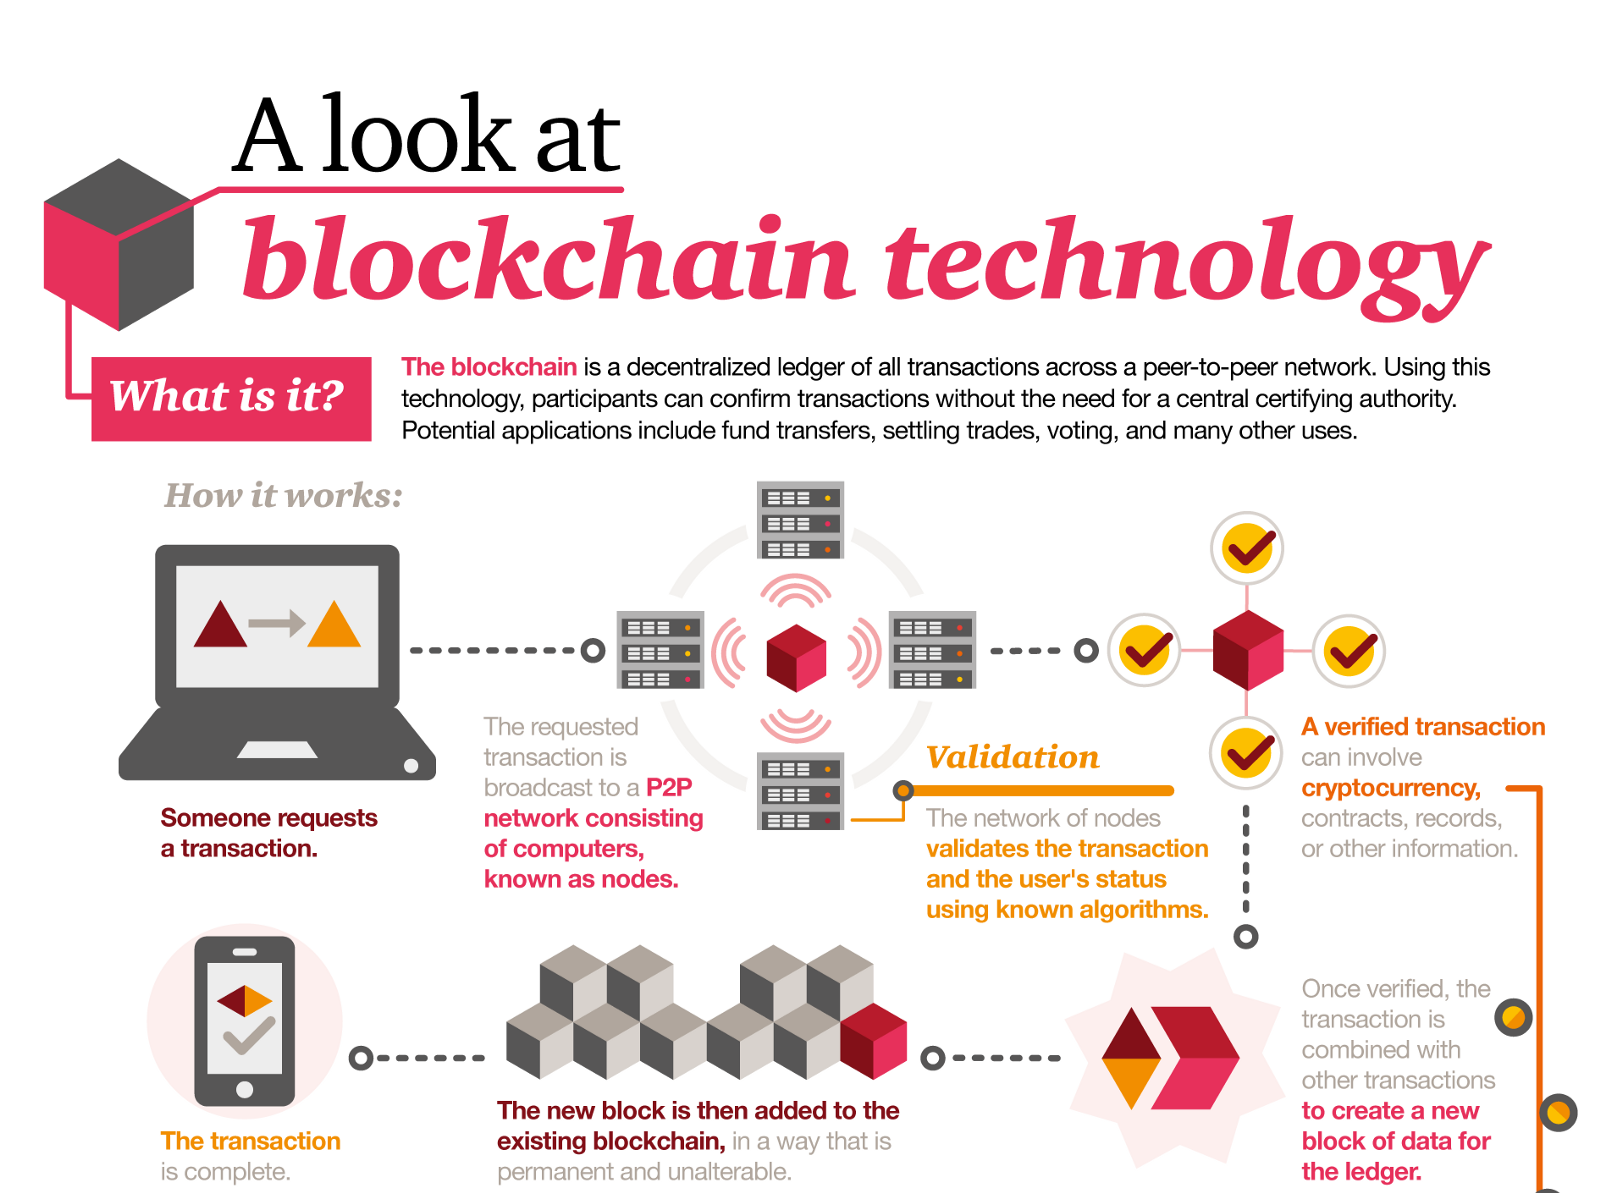 Pulling The Blockchain Apart The Transaction Life Cycle